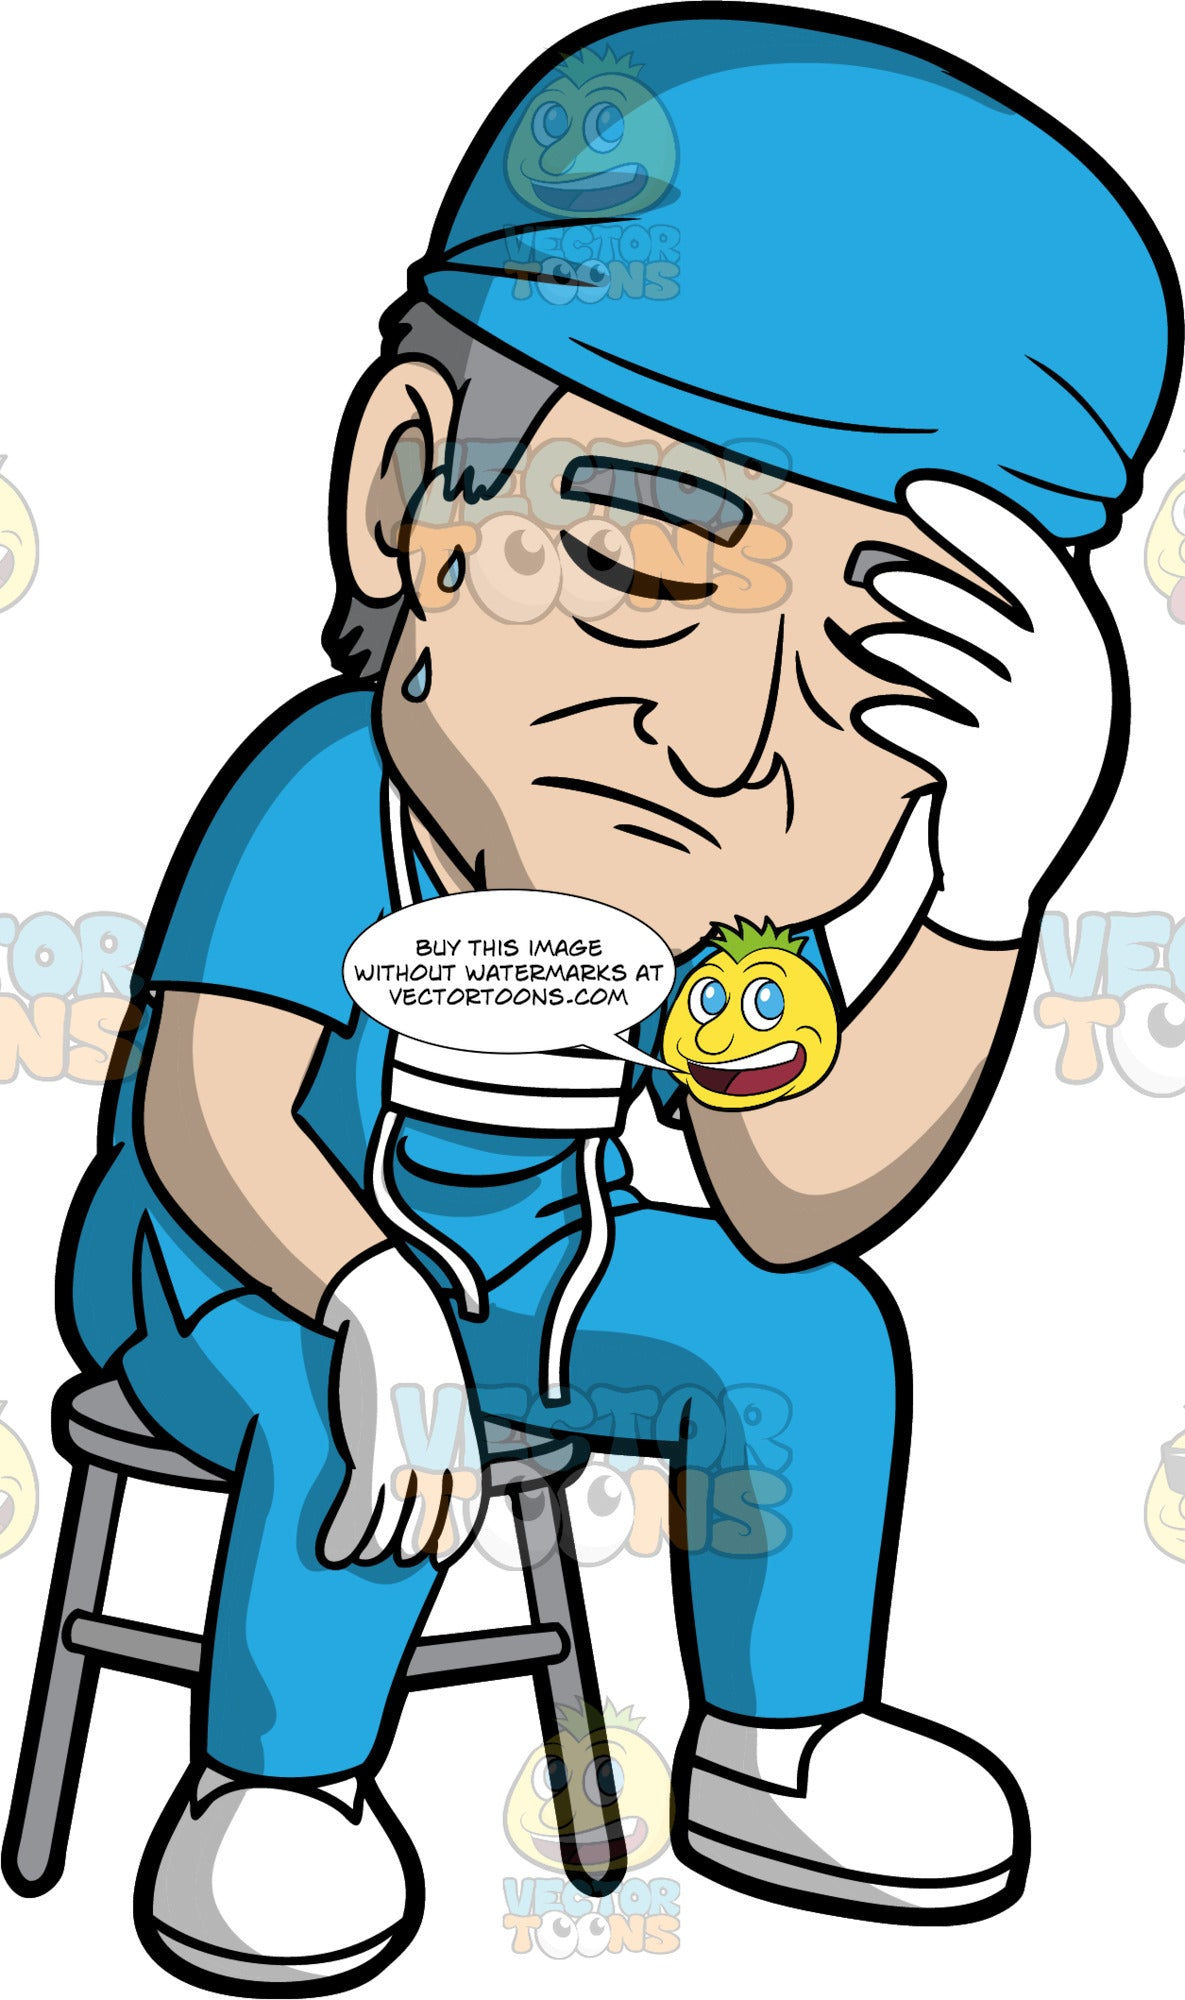 An Exhausted Doctor Sitting On A Stool. A doctor wearing blue scrubs, a blue cap, white gloves, white shoes, and a face mask hanging around his neck, sitting on a stool with his eyes closed and one hand on his forehead